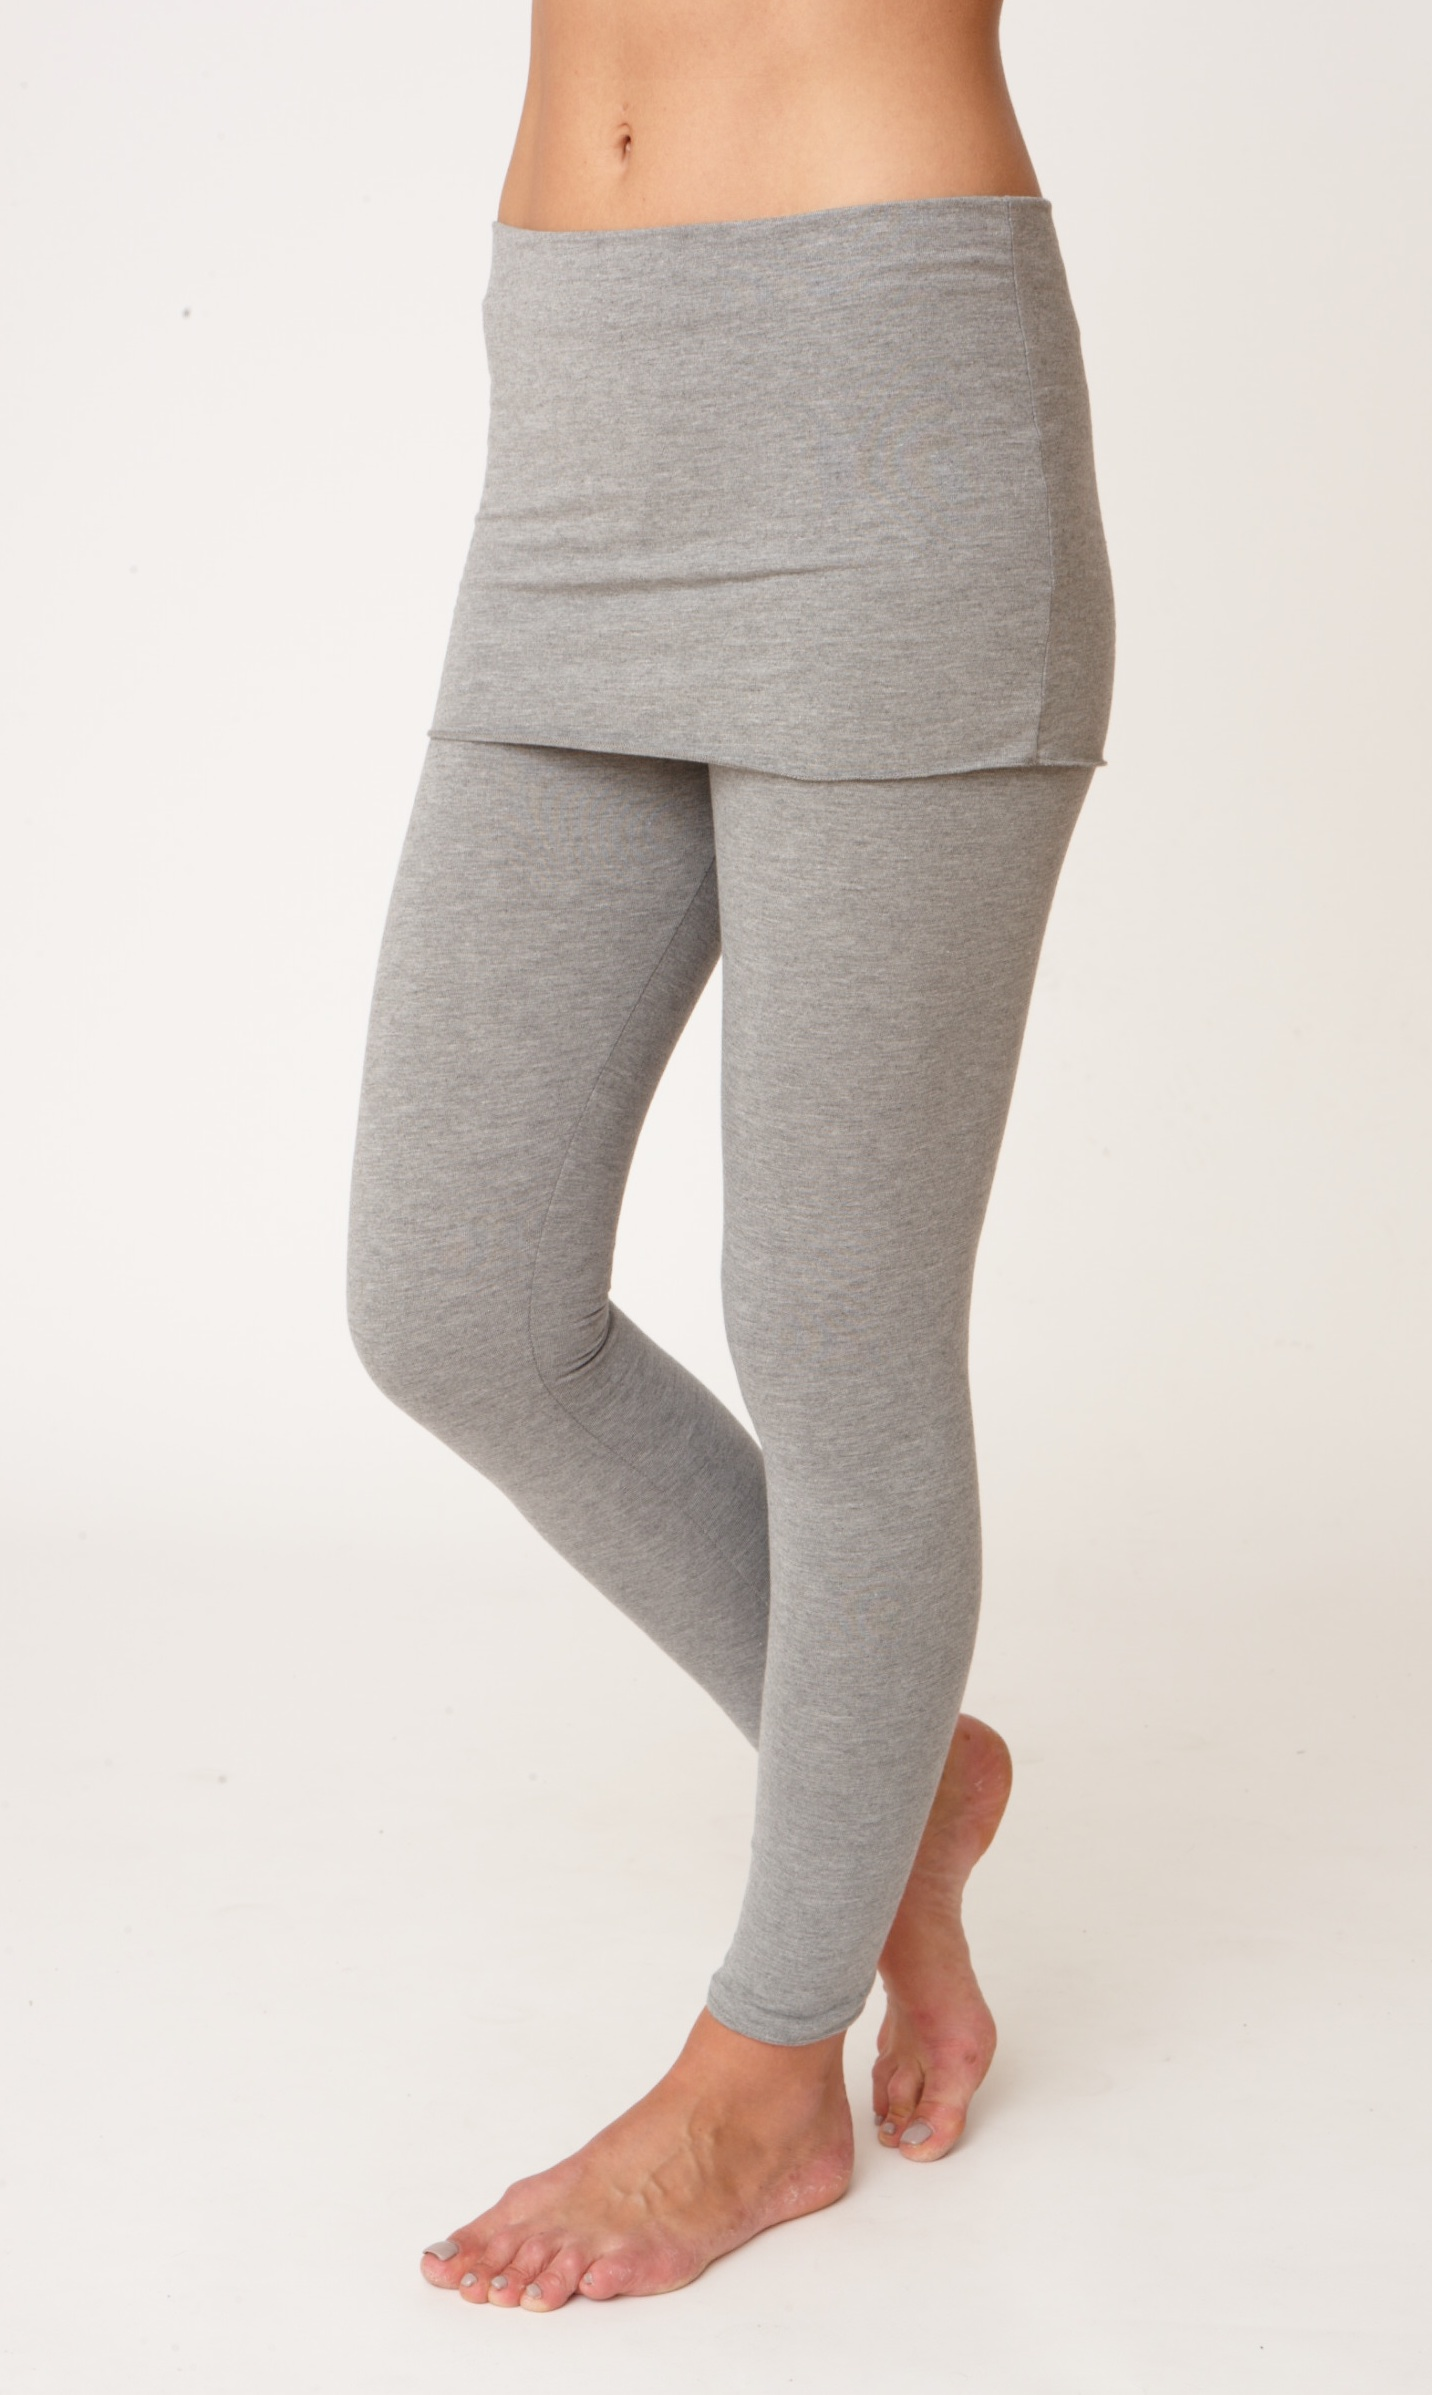 Asquith Smooth You Full Length Yoga Leggings Pale Grey marl with Waistband